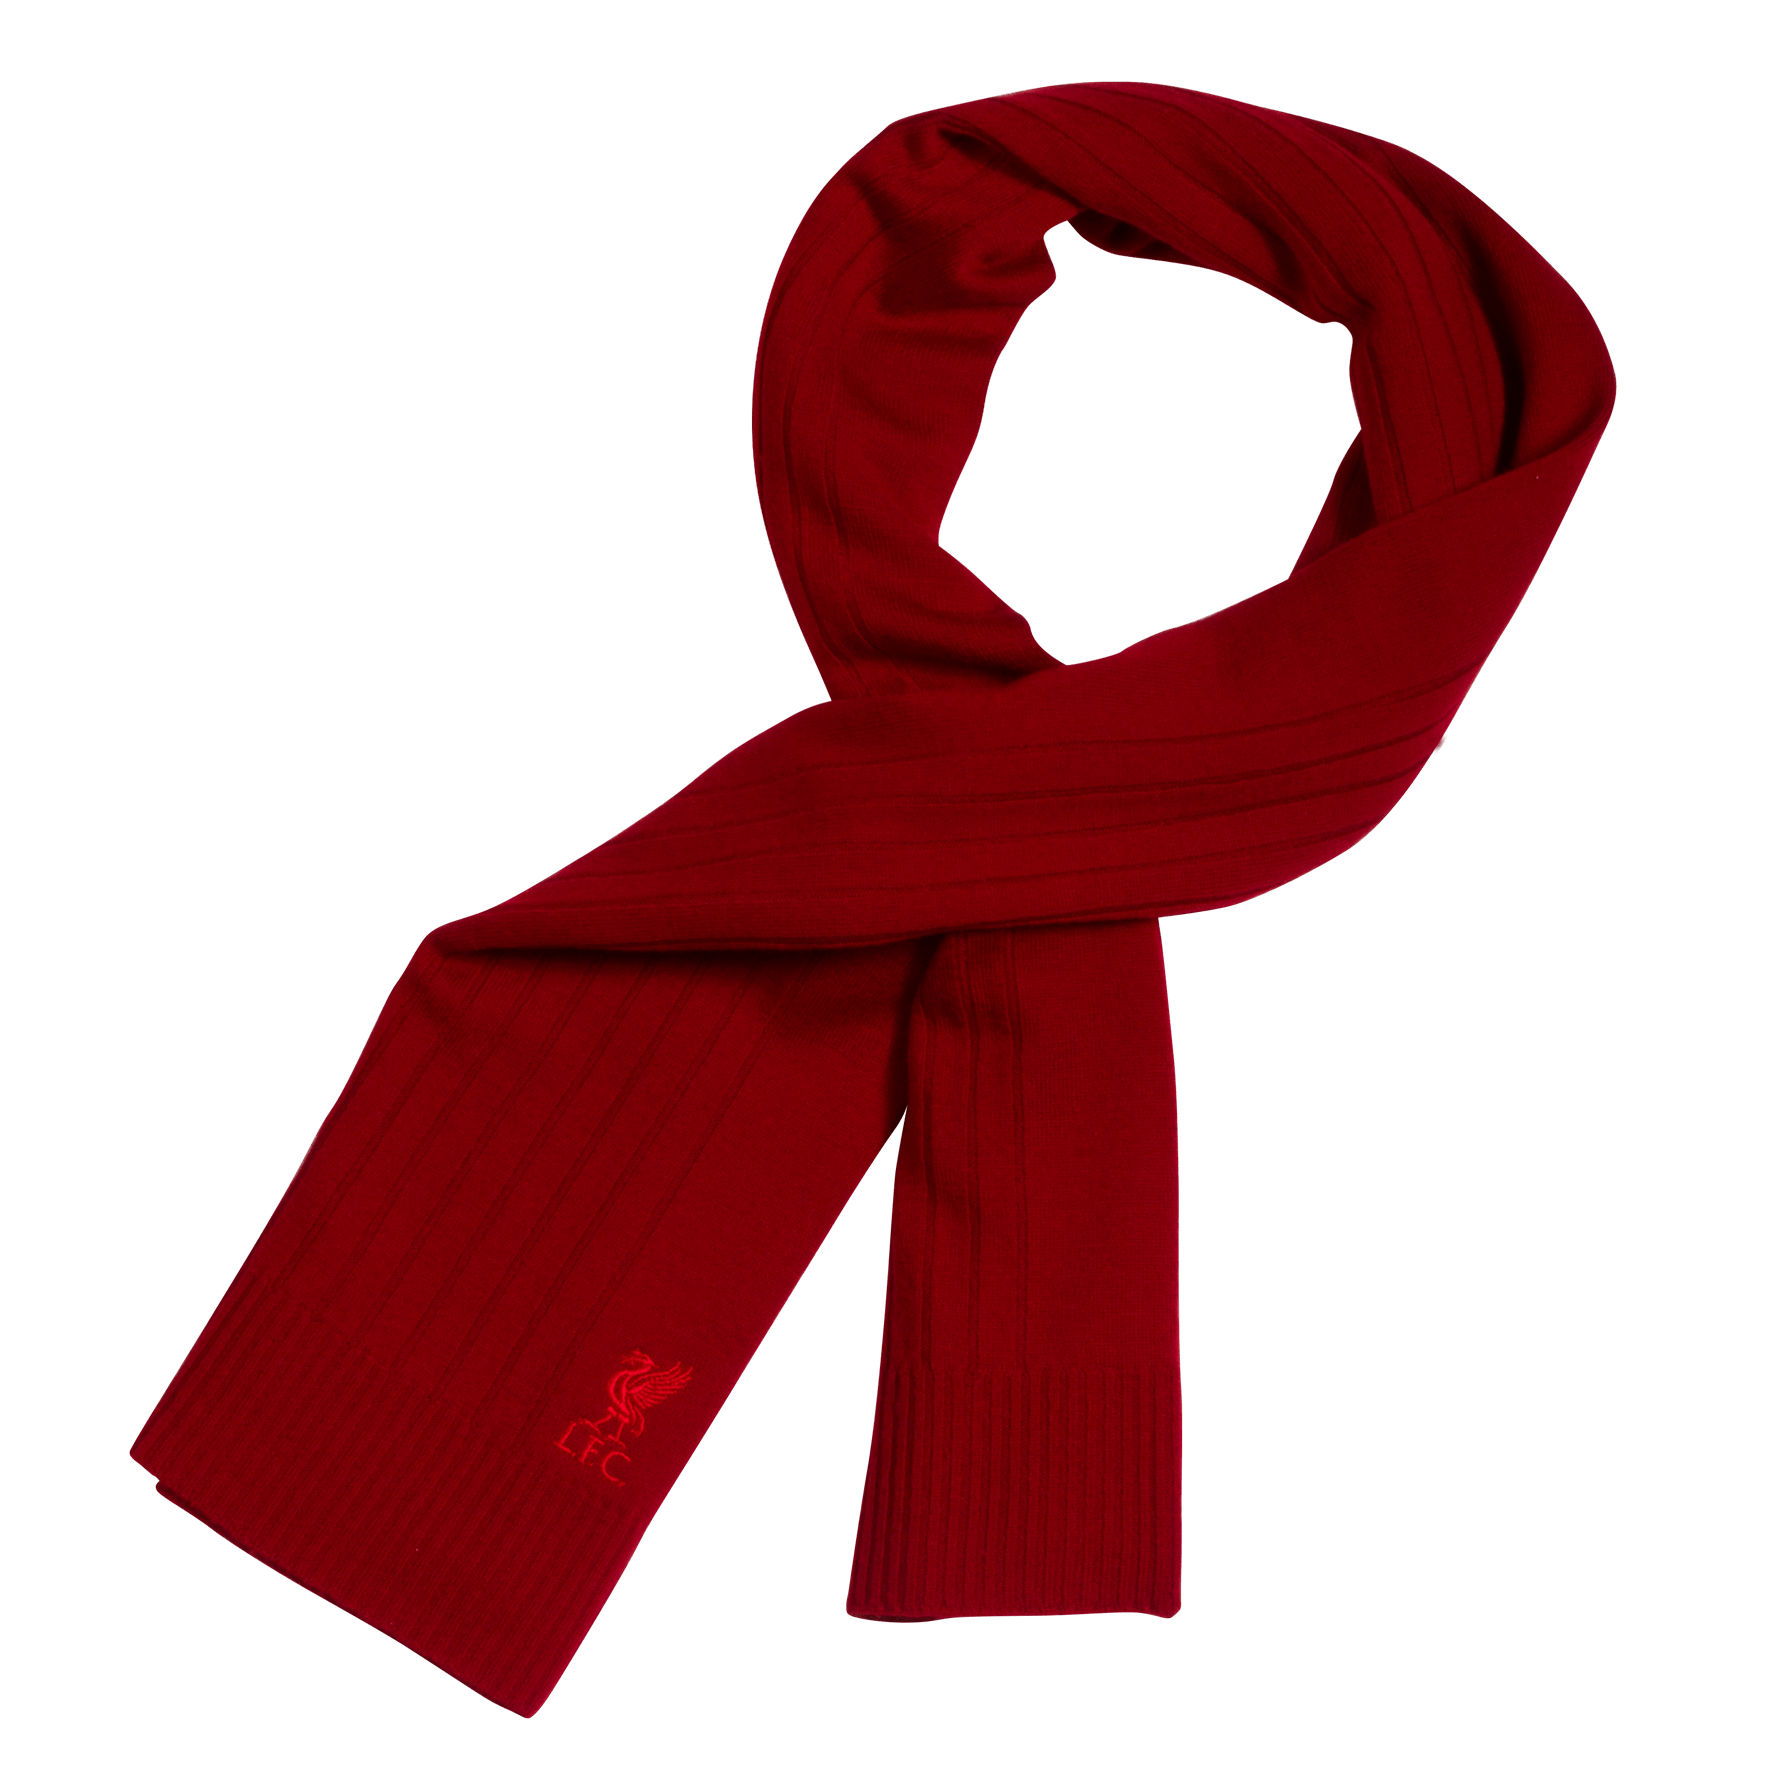 Scarf png. Red image purepng free